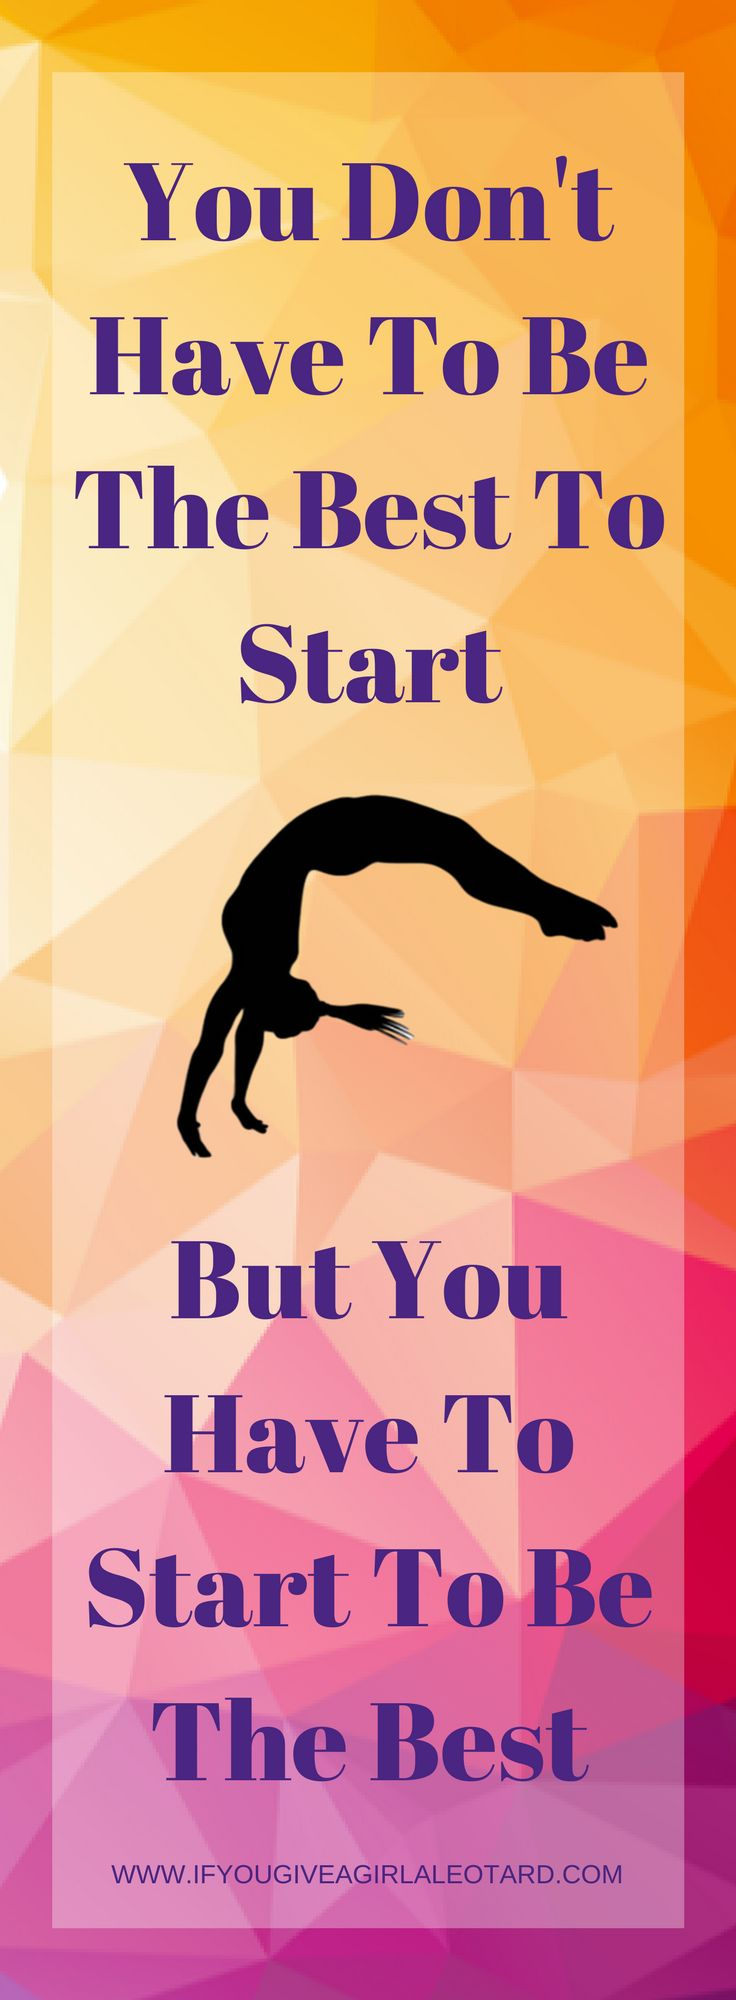 Gymnastics Inspirational Quote - You Don't Have To Be The Best To Start, But You Have To Start To Be The Best